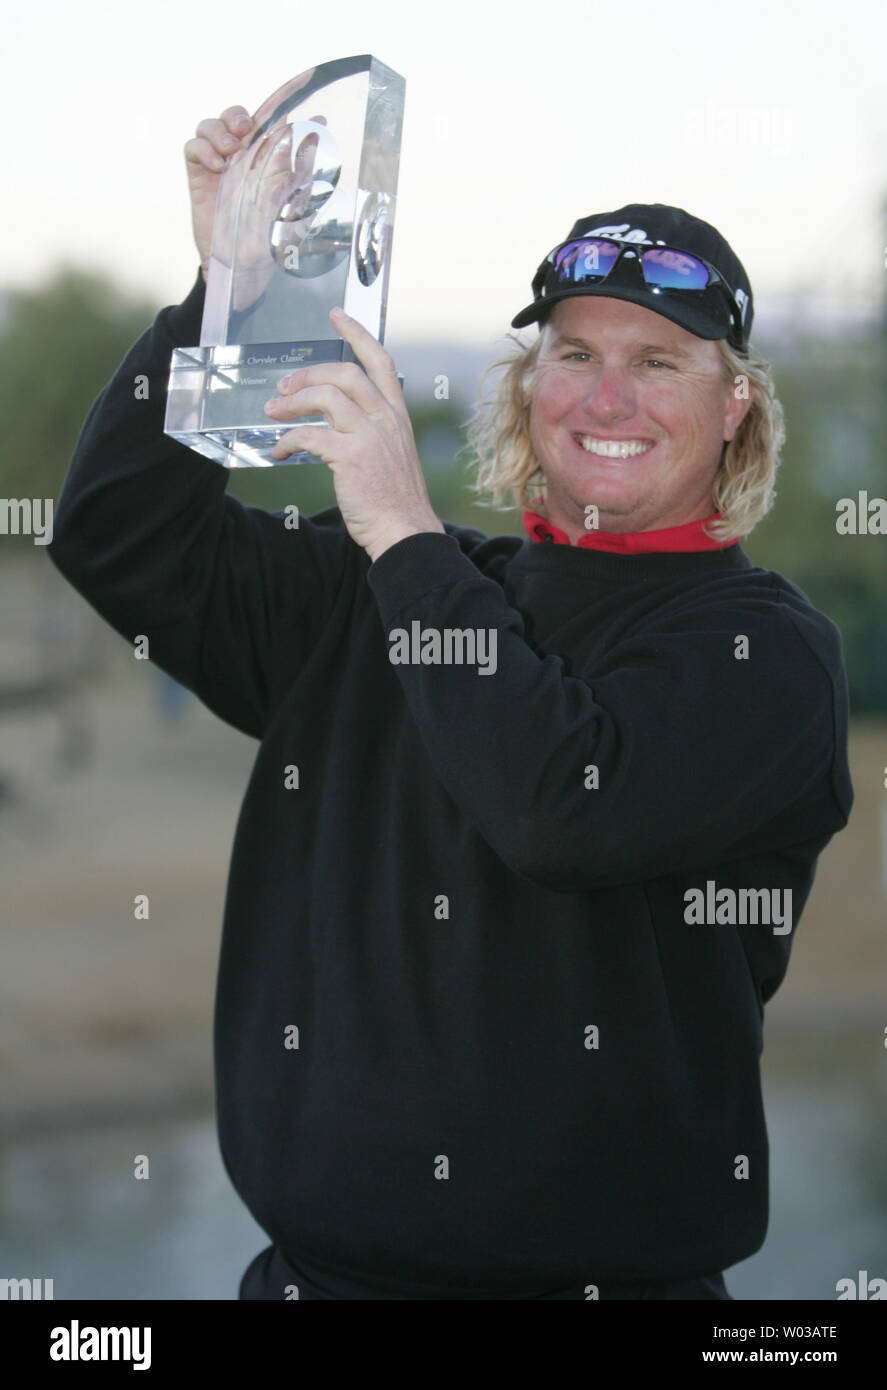 Charley Hoffman of Las Vegas, Nevada holds up the winners trophy for winning the Bob Hope Chrysler Classic at The Classic Club in Thousand Palms, California on January 21, 2007.   Hoffman won in a playoff after tying John Rollins of Dallas, Texas by sinking an eagle putt on the 18th hole of regulation.  (UPI Photo/Art Foxall) - Stock Image